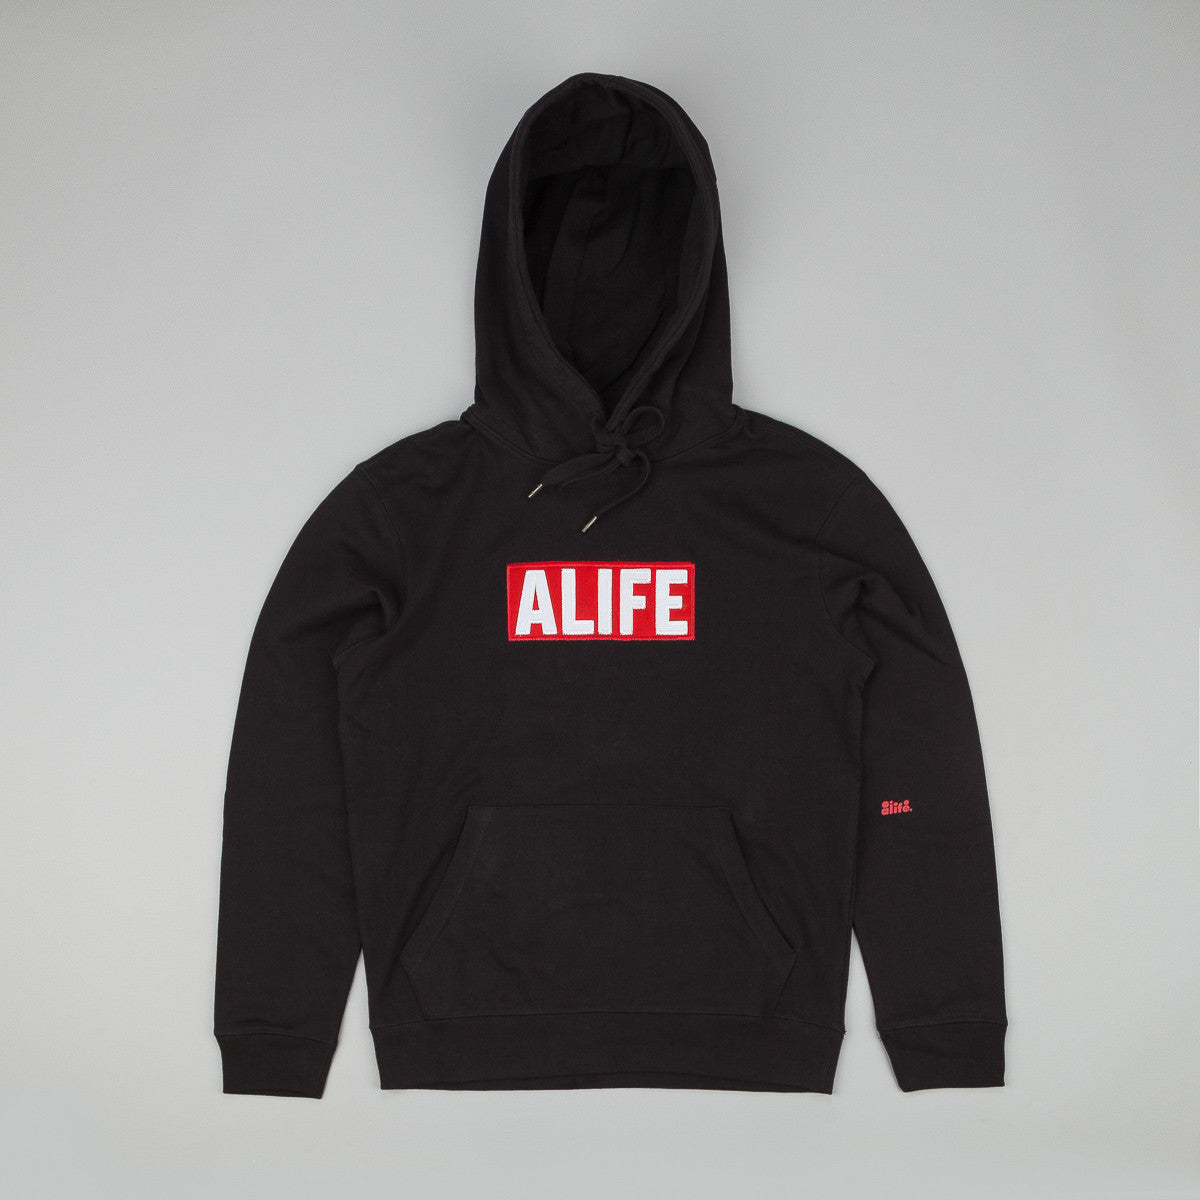 Alife Basic Stuck Up Pullover Hooded Sweatshirt